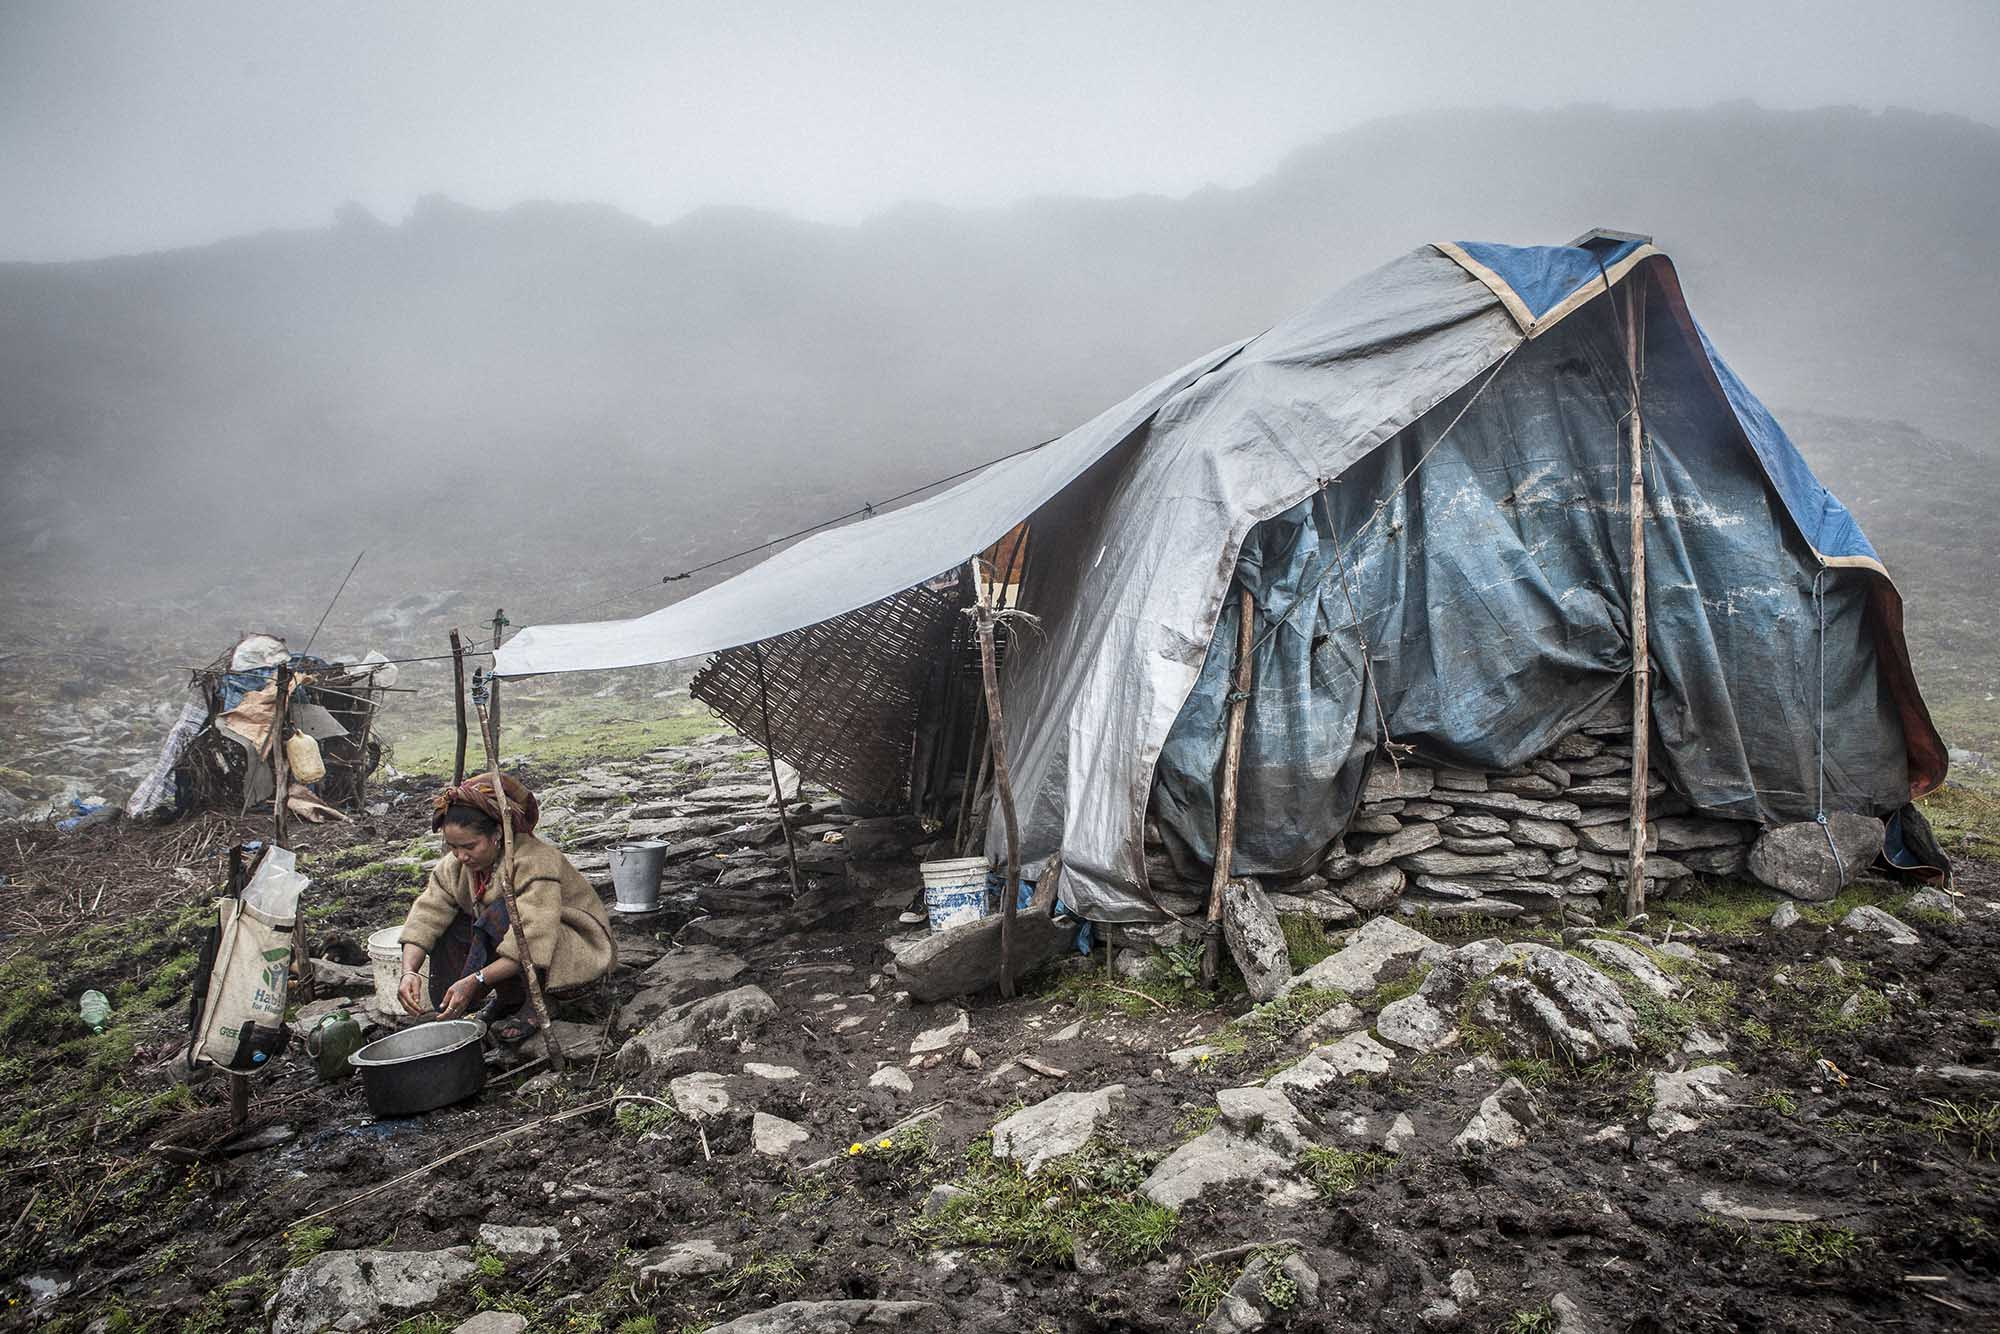 Maili Ghising is washing the dishes in her temporary shelter located at Panch Pokhari, 4300 meters in altitude. Sindhupalchowk, Nepal. 2015.